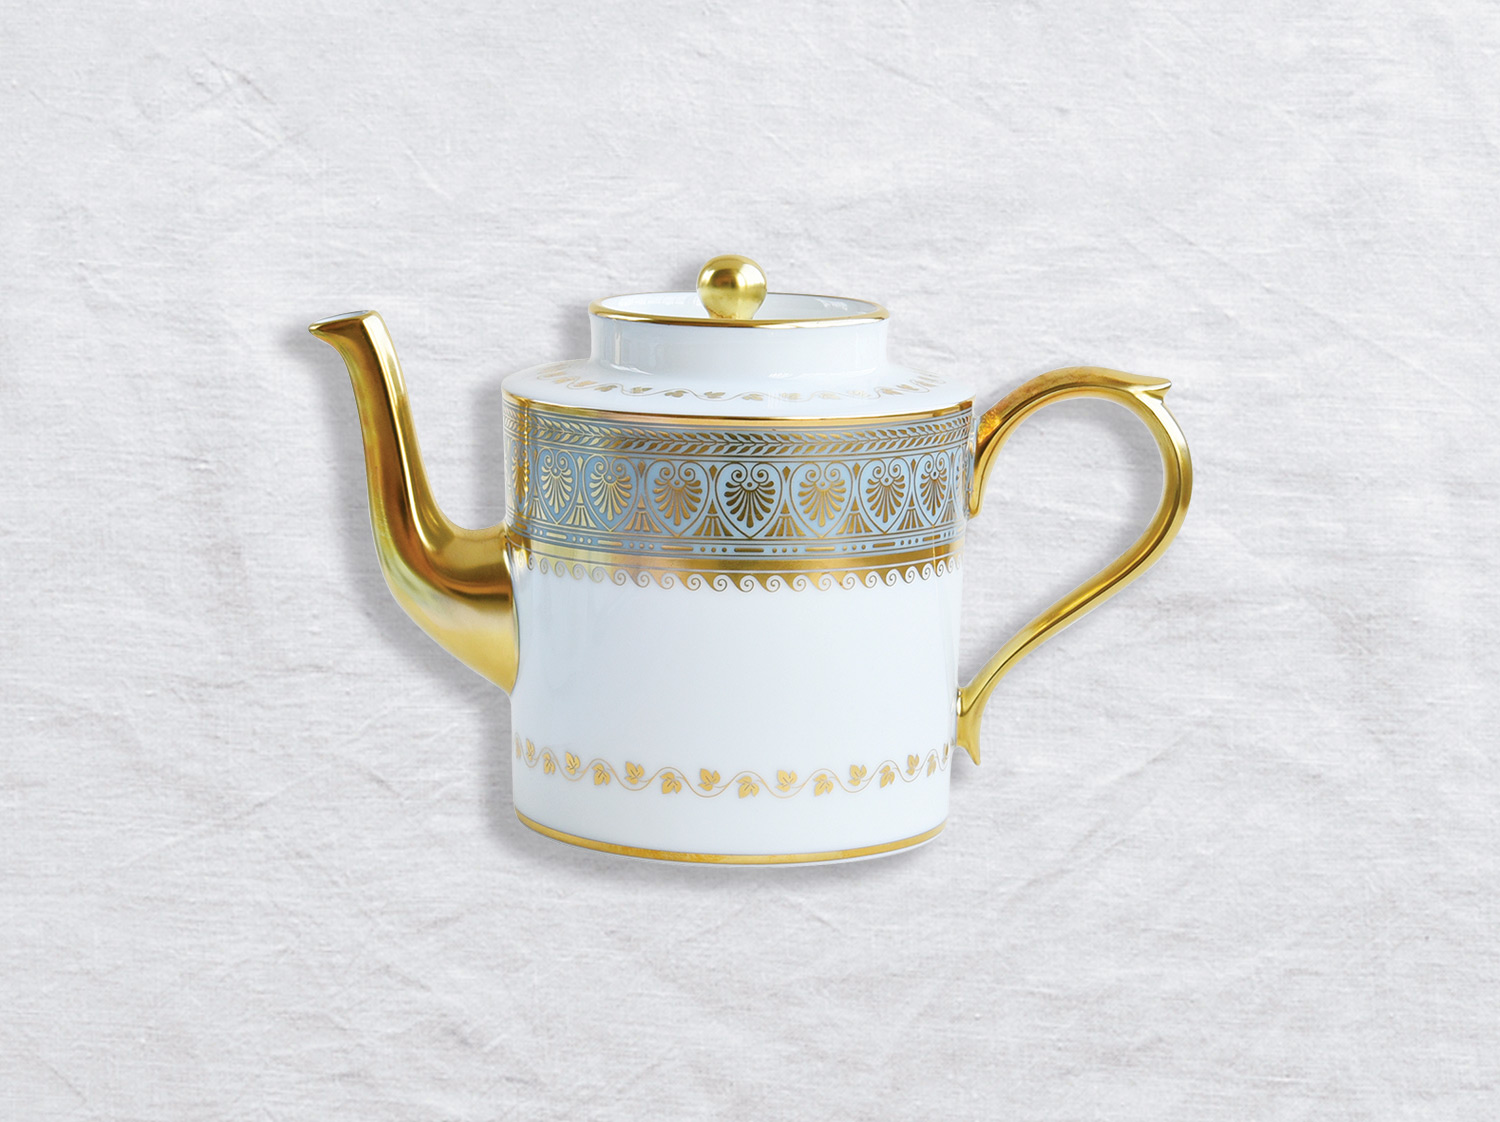 Théière 6 tasses en porcelaine de la collection Elysee Bernardaud